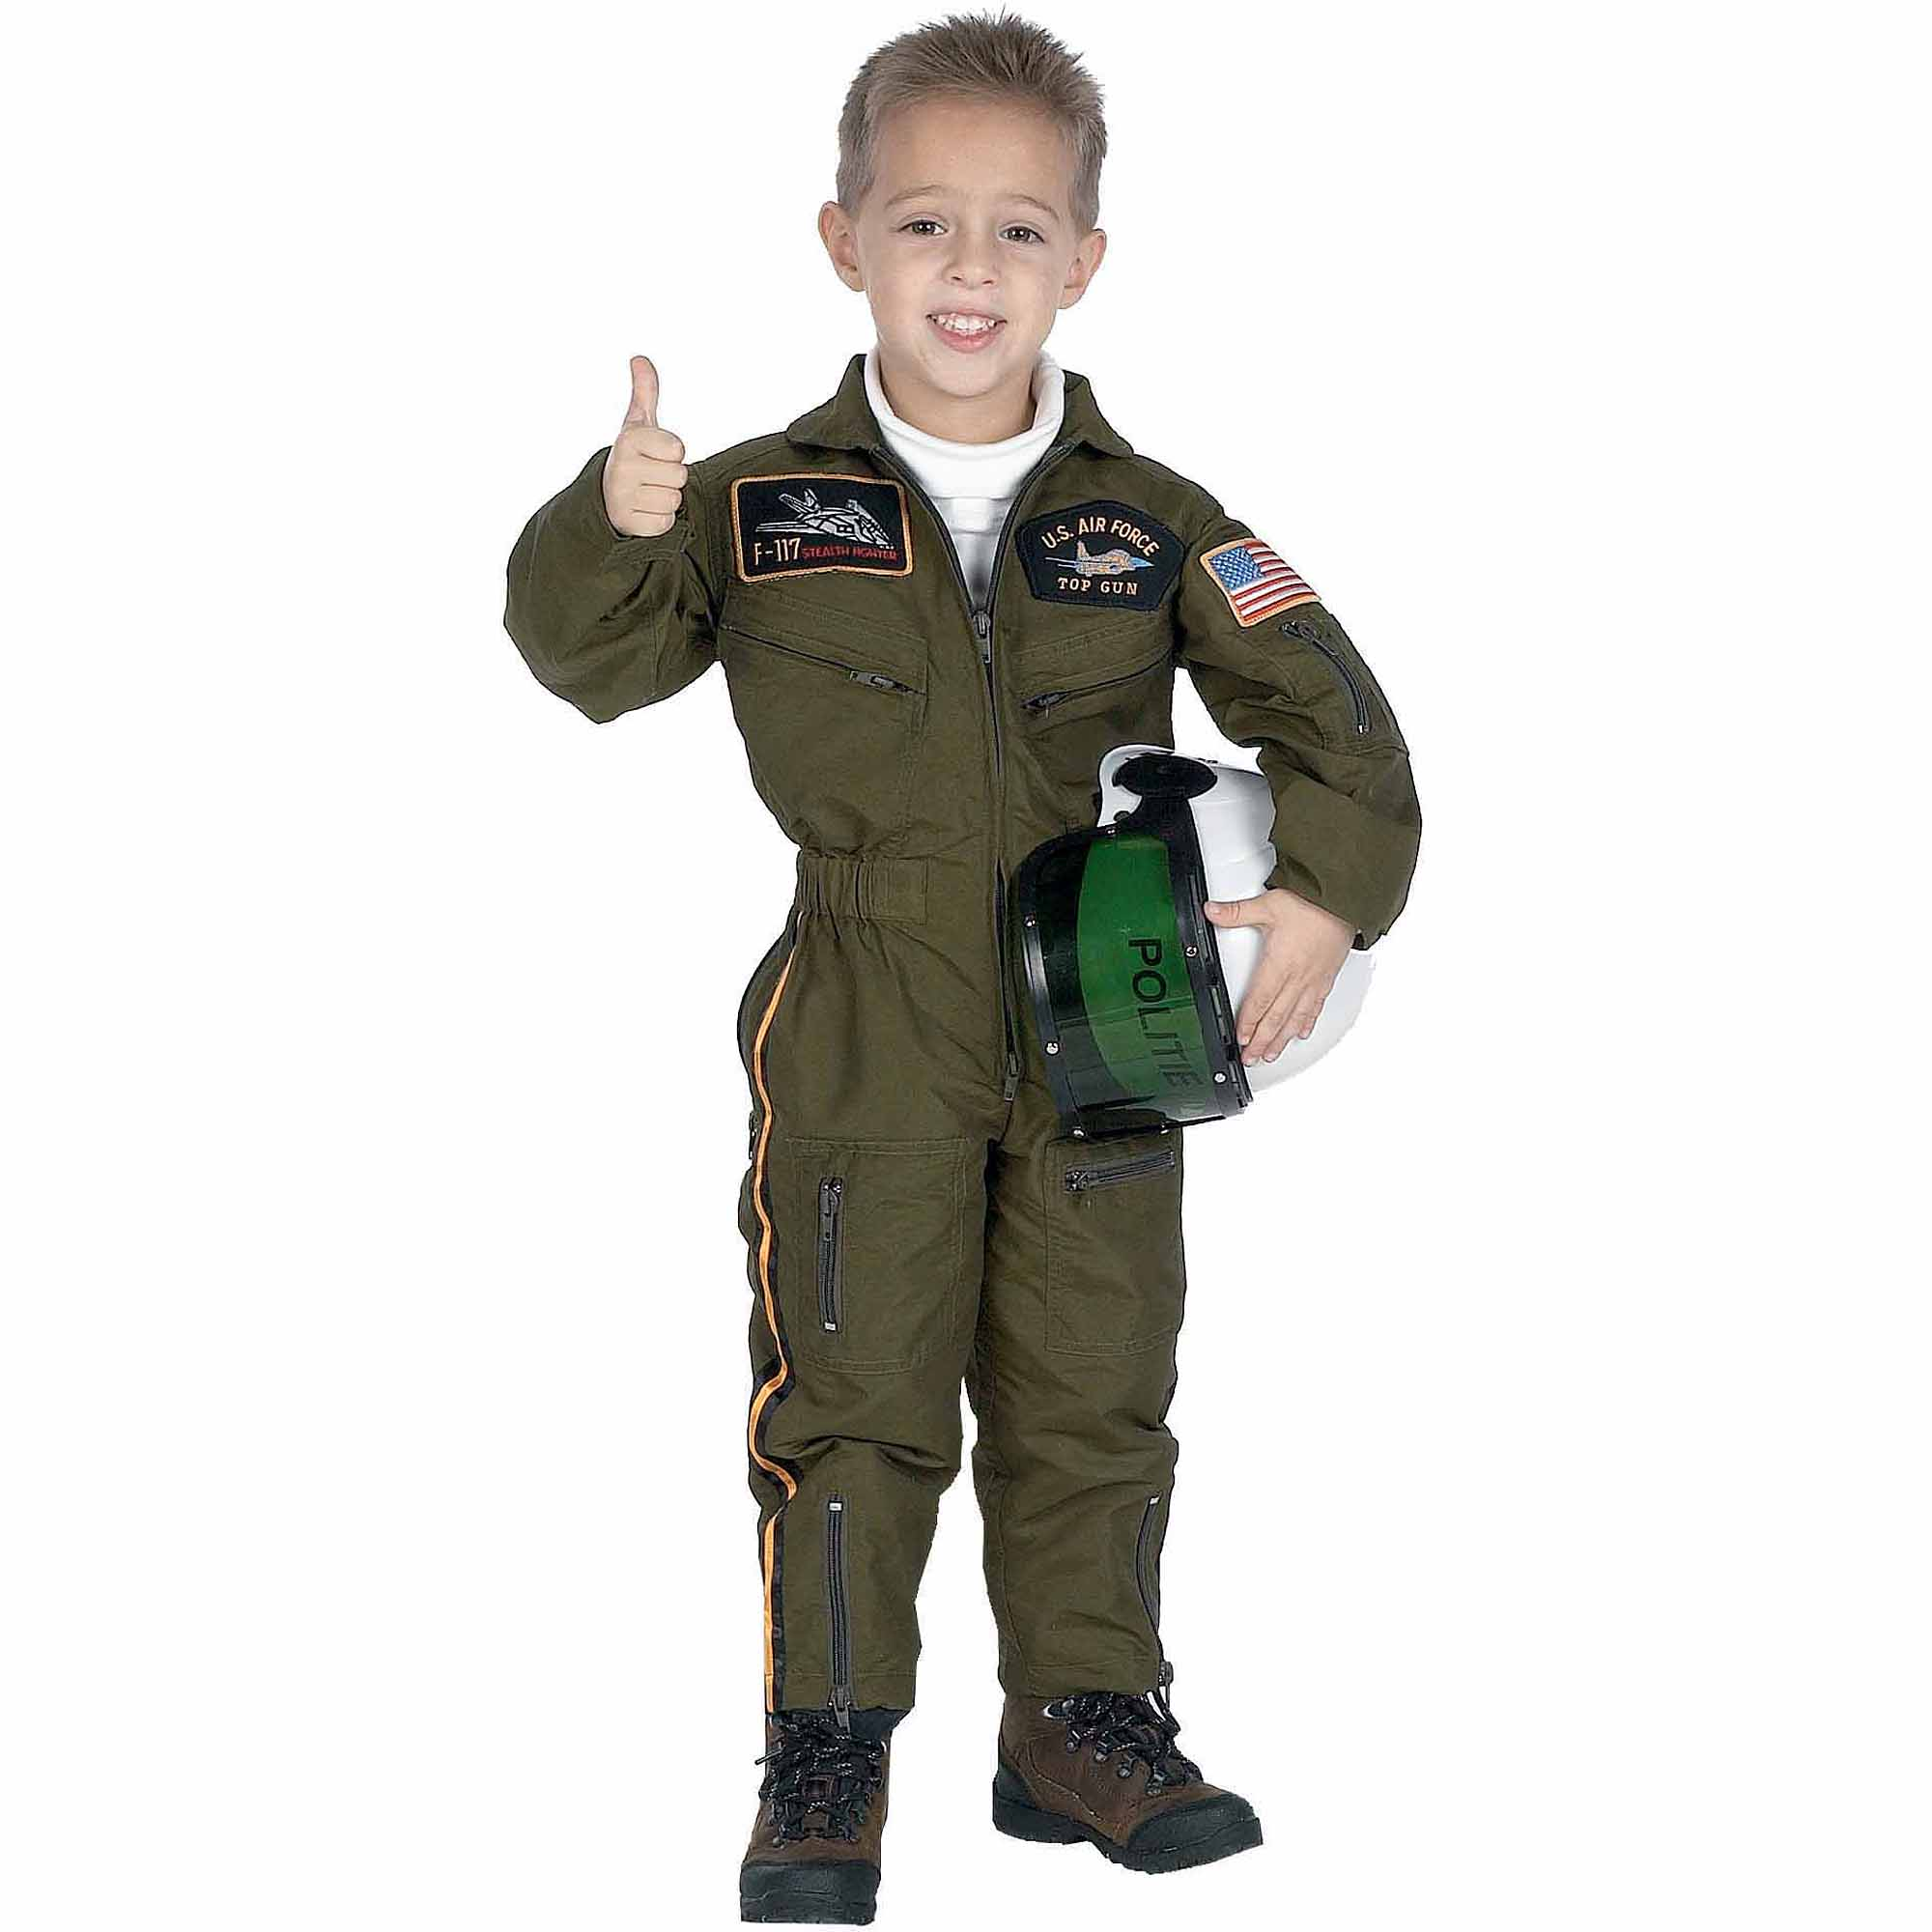 air force costumes for boys  sc 1 st  Journeys International & Air Force Costumes For Boys | Journeys International